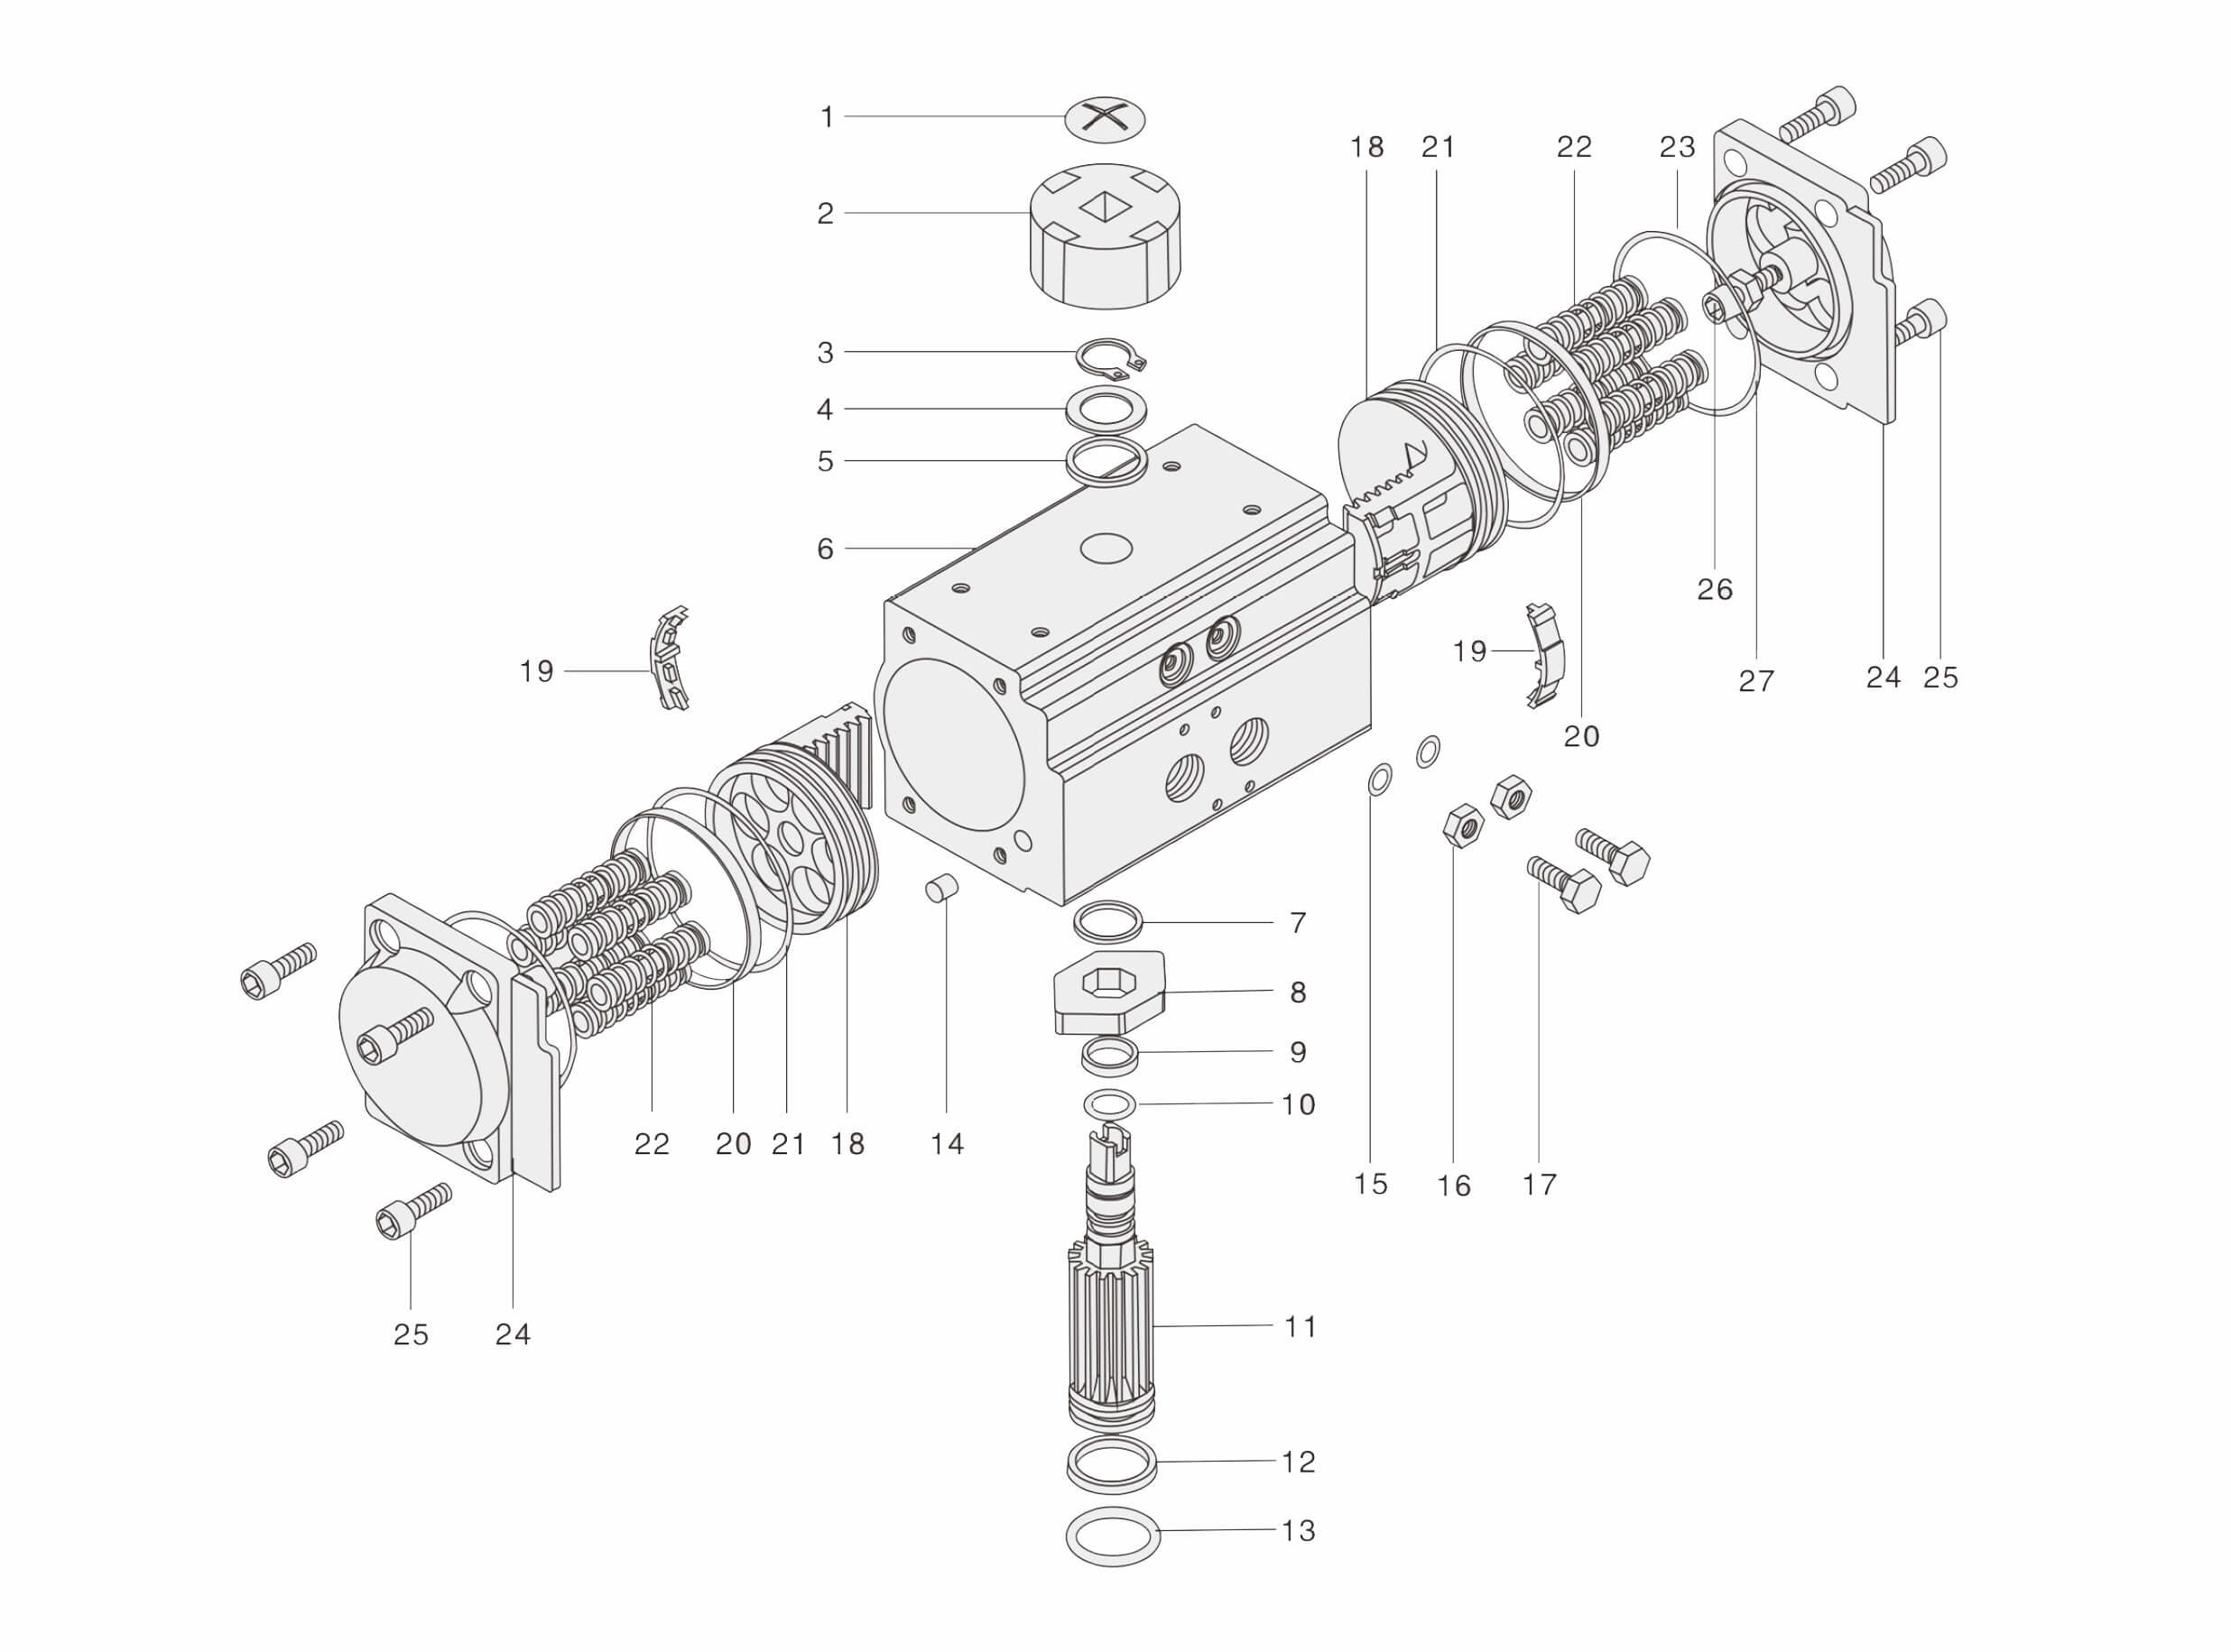 27 Components Of Covna Rack Amp Pinion Pneumatic Actuator